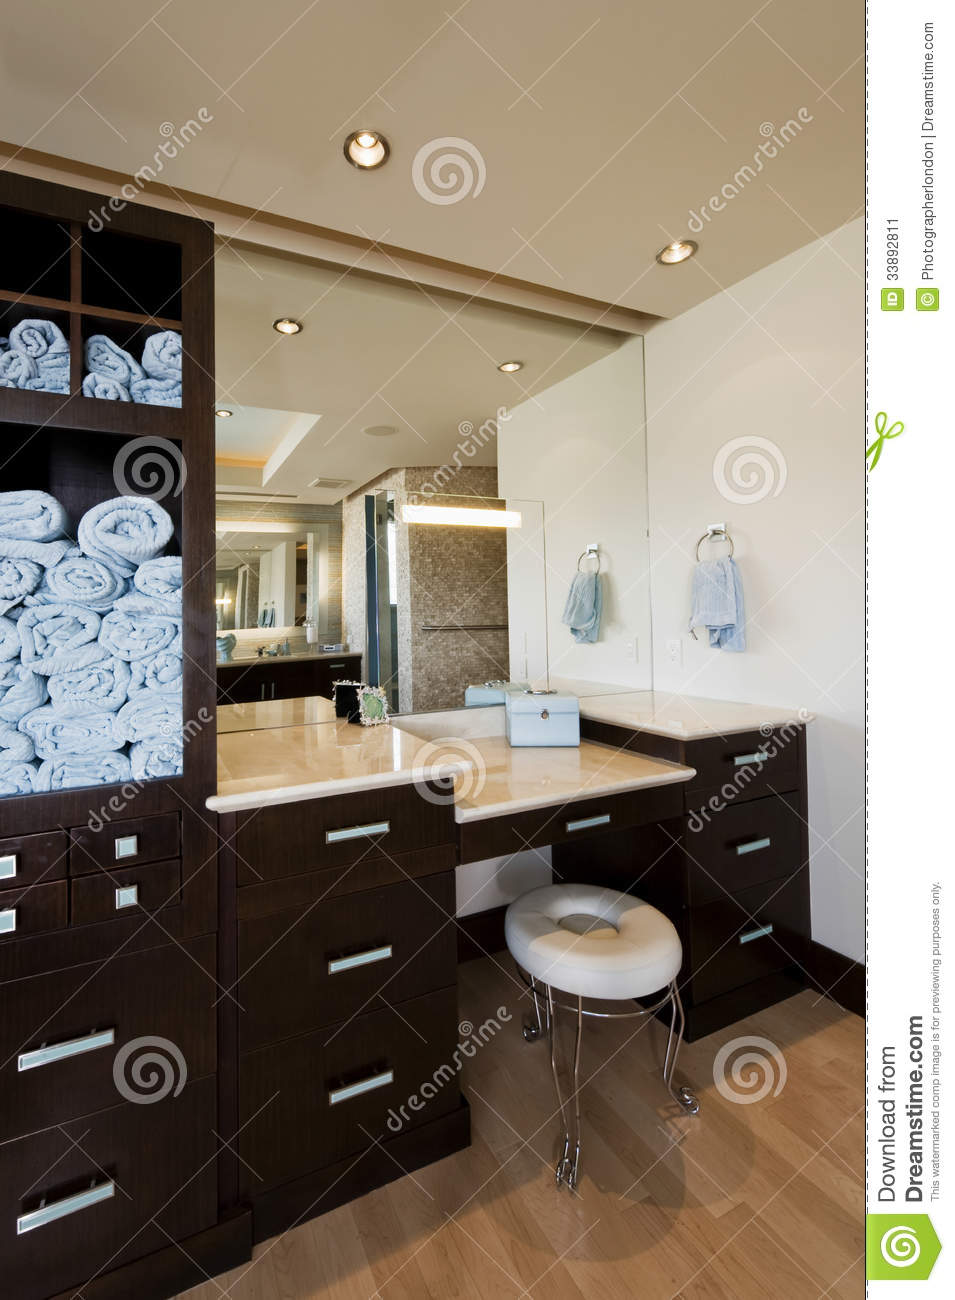 Gabinetes De Baño Pr:Bathroom Cabinet with Stools